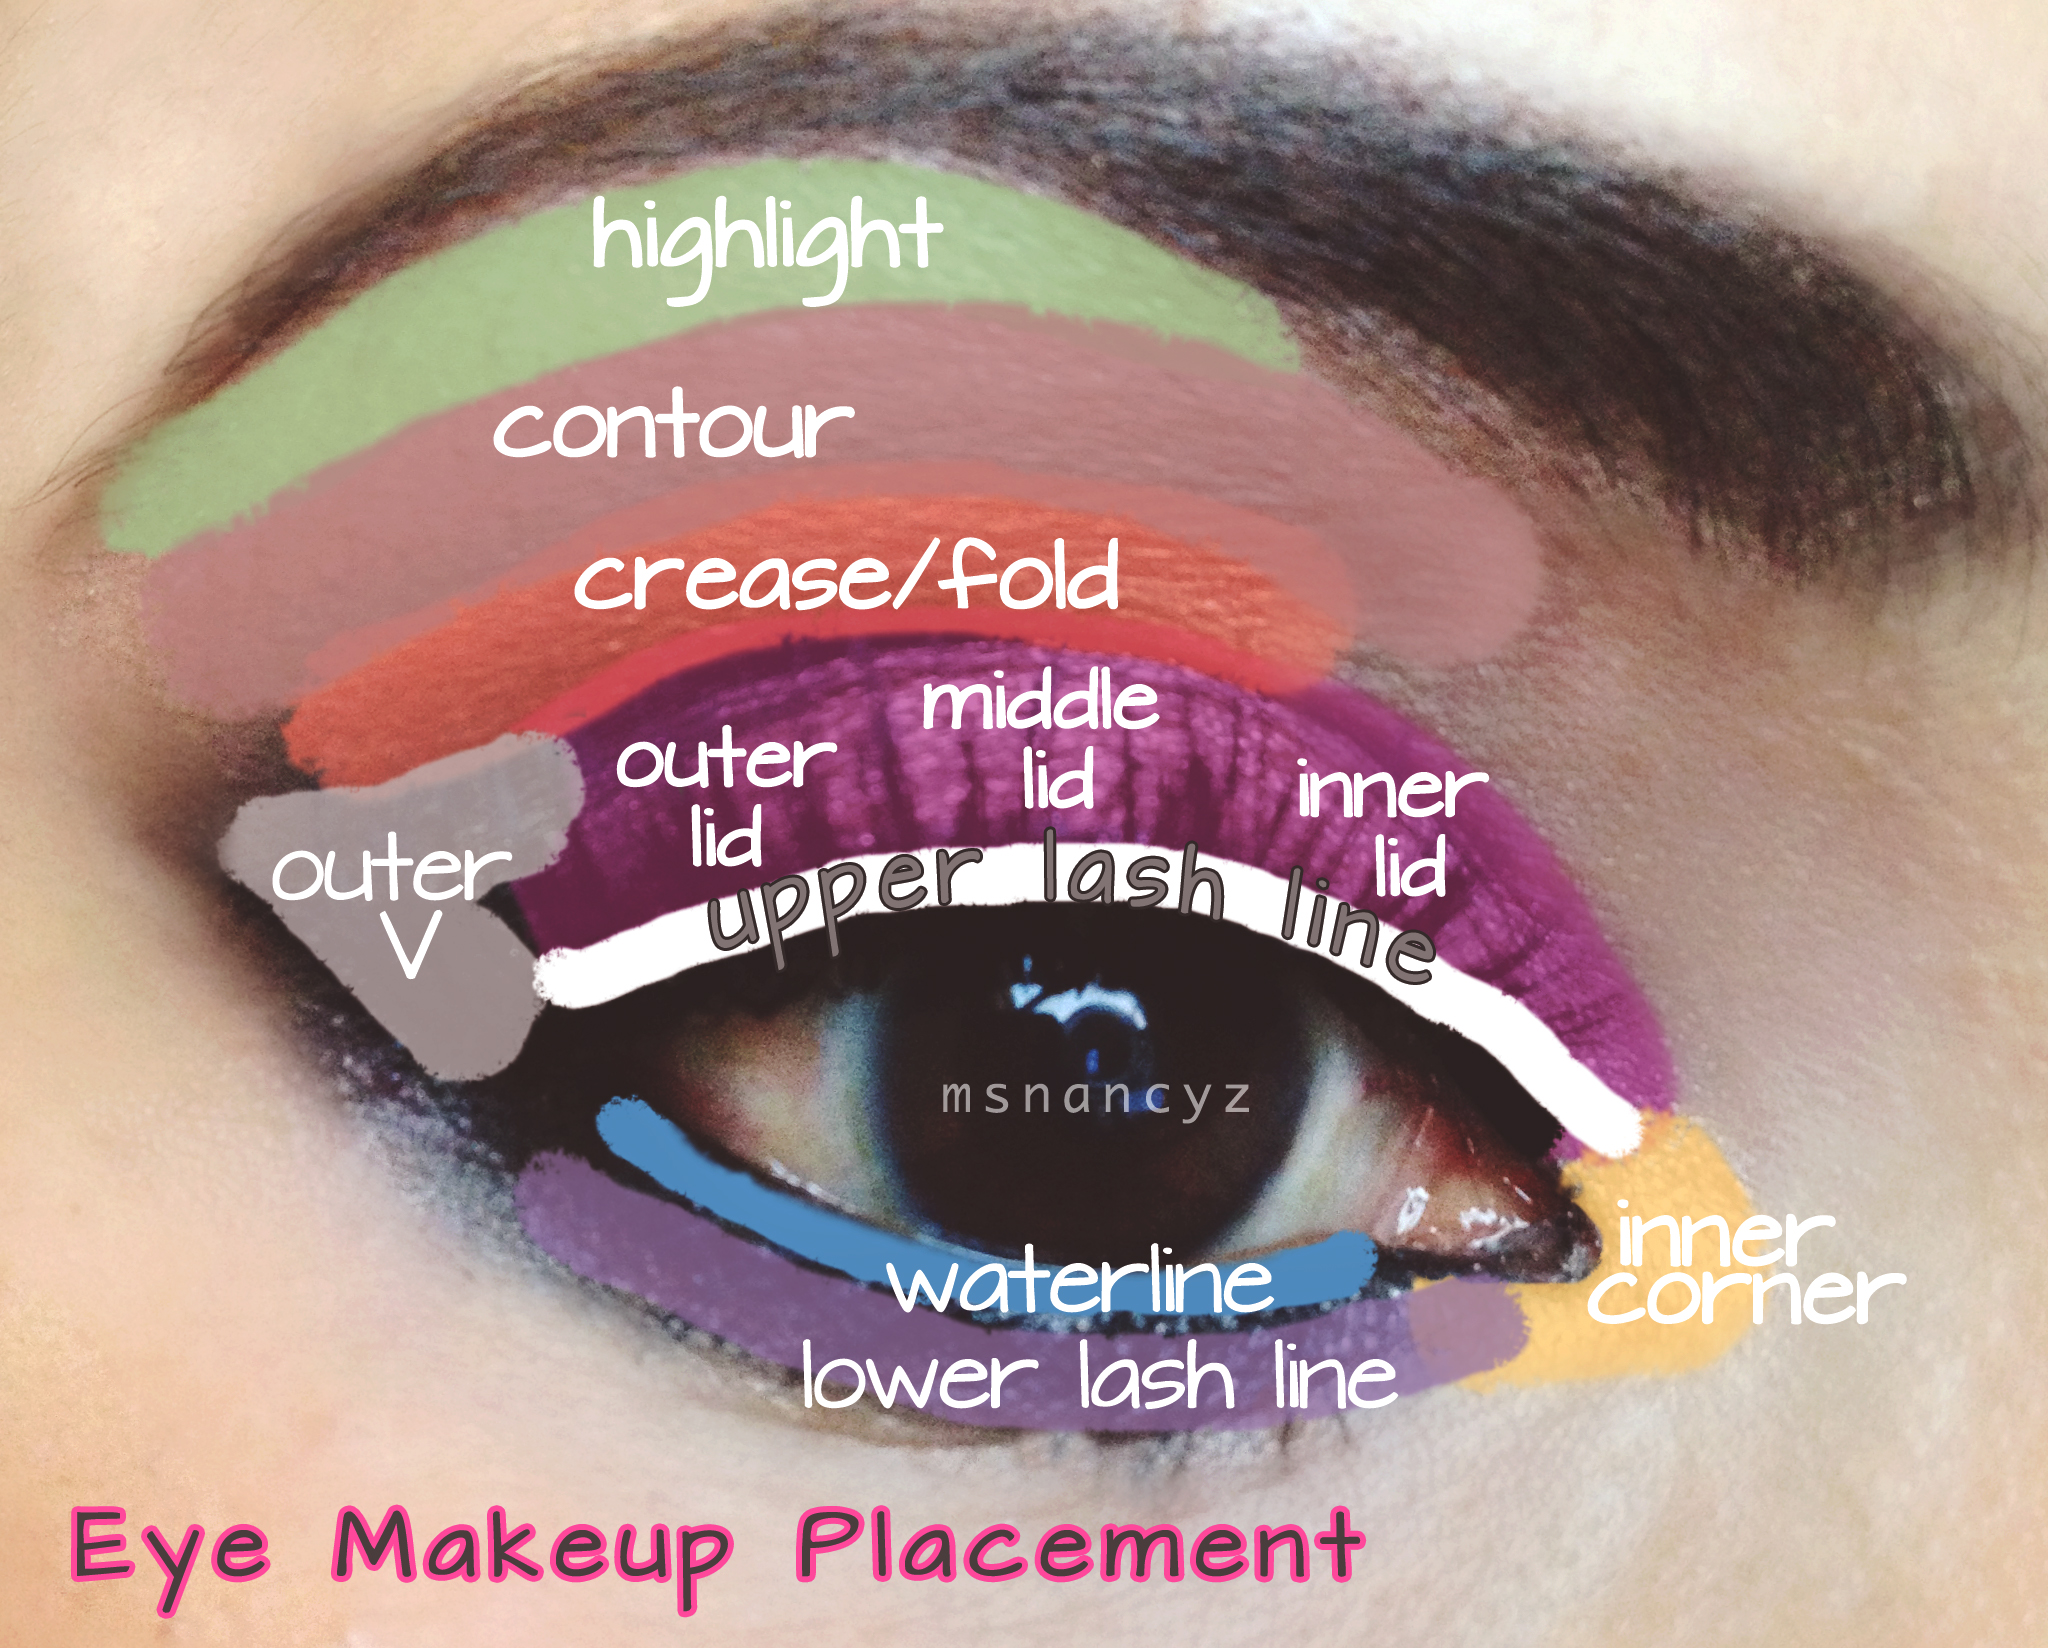 Eye makeup diagram diy wiring diagrams nature s eye eye makeup placement diagram of eye areas rh naomispenny blogspot com hooded eye makeup diagram eye diagram makeup application ccuart Images